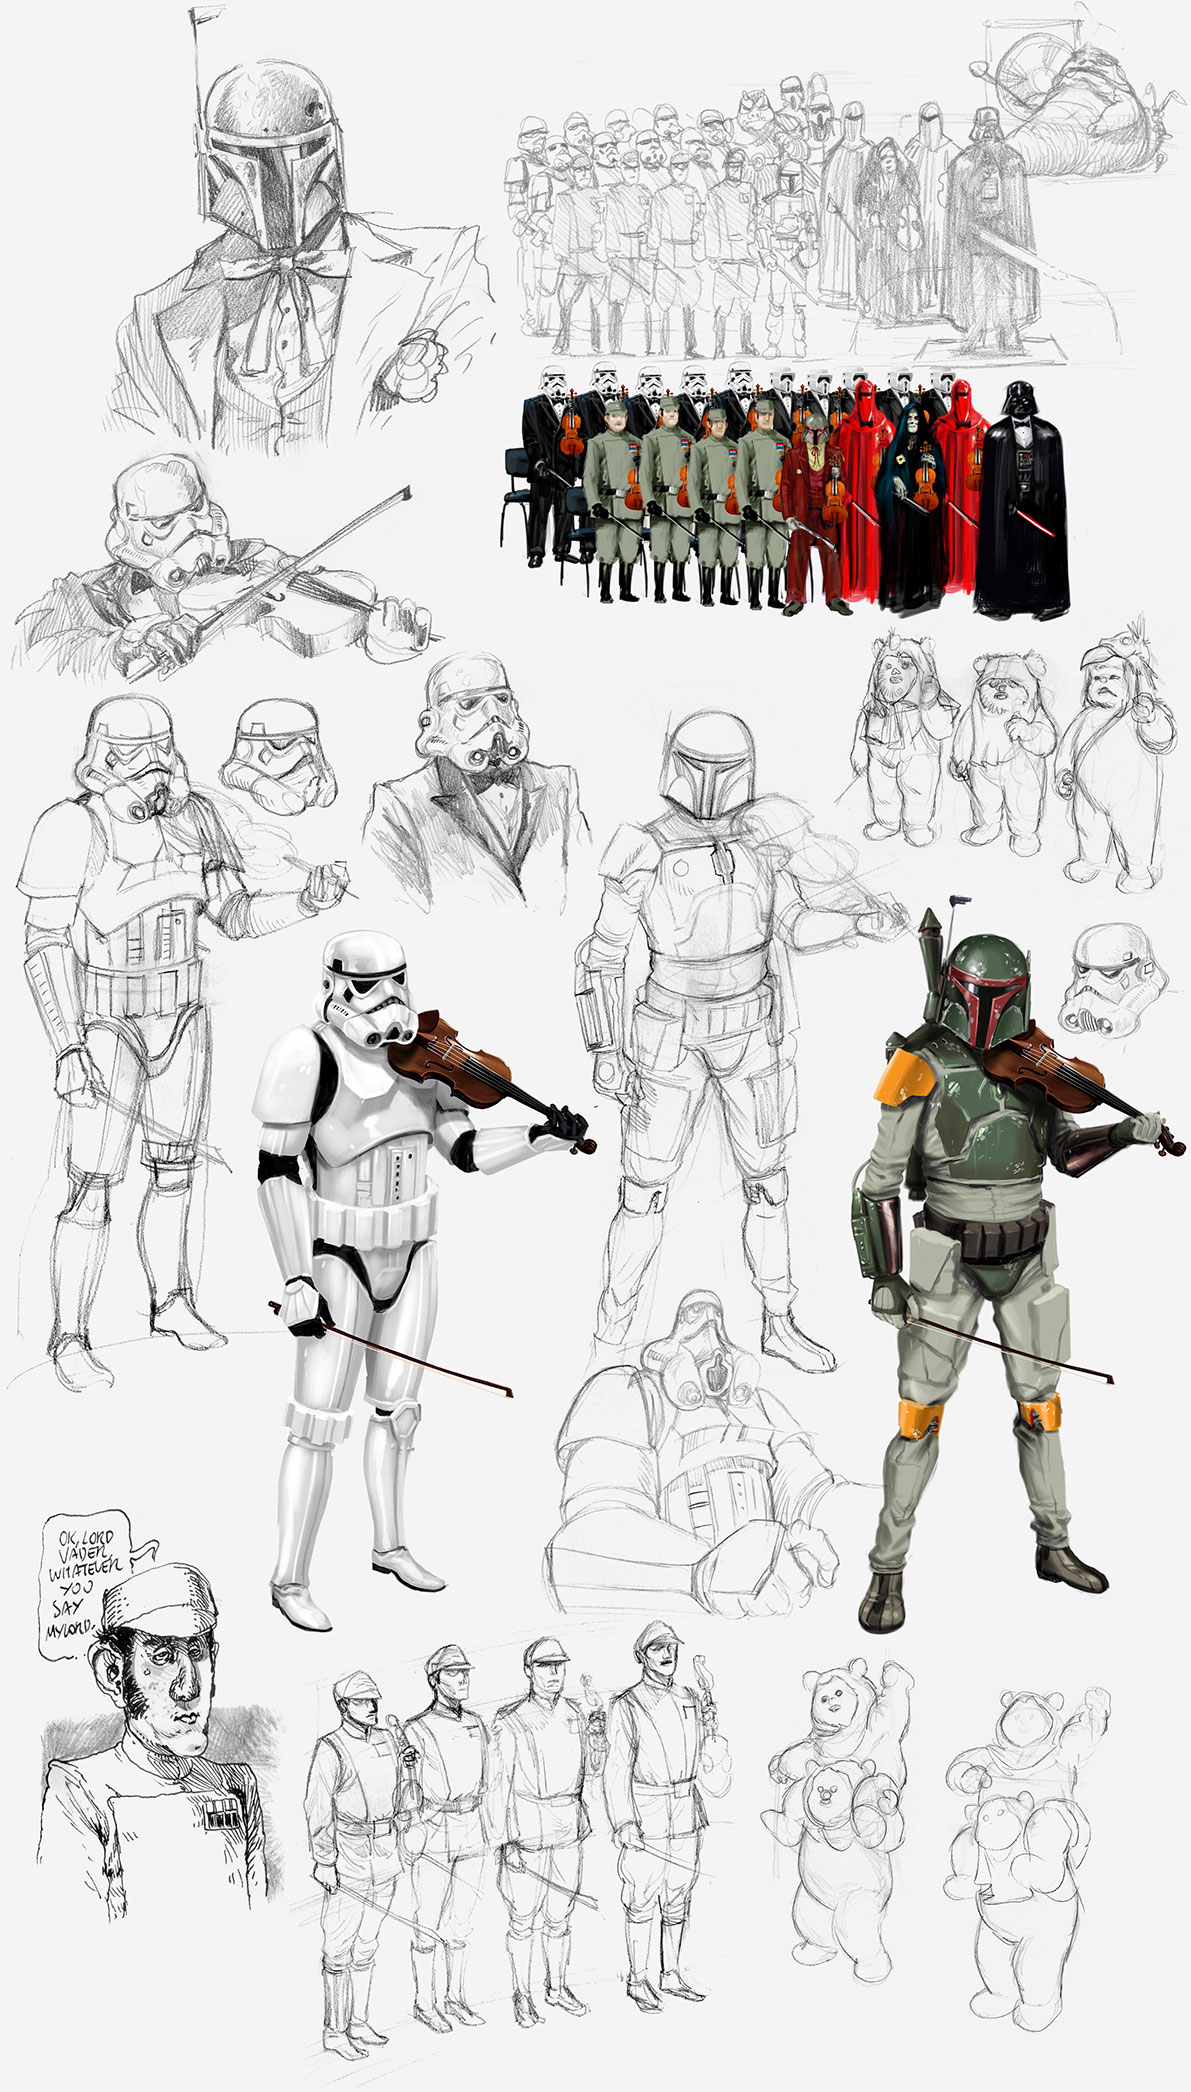 sketches-macacolandia-return-of-the-jedi-john-williams-30-anos